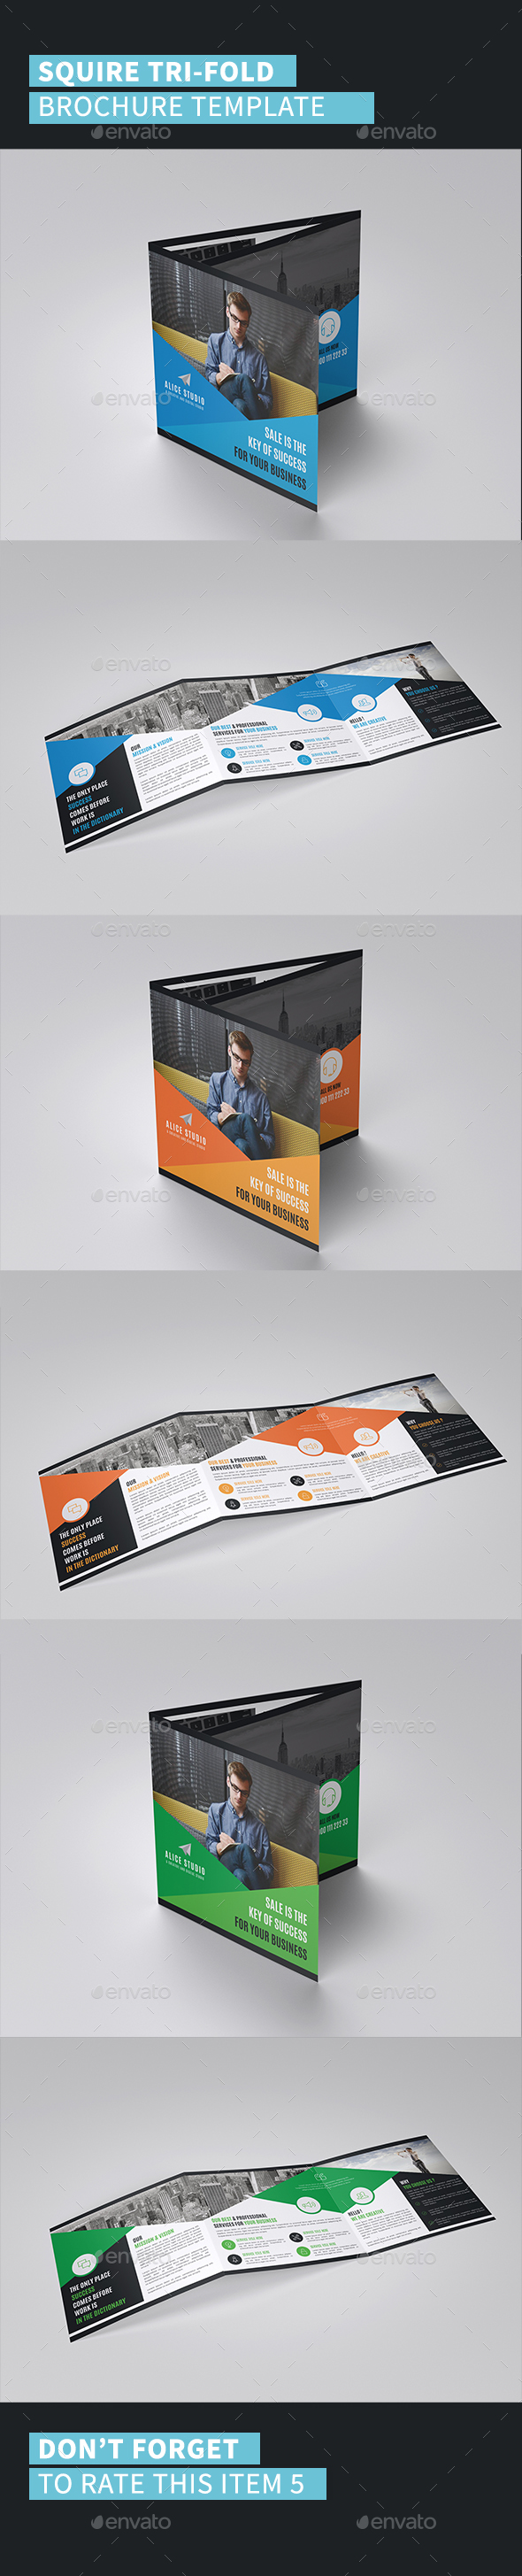 Squire Tri-Fold Brochure Template - Corporate Brochures